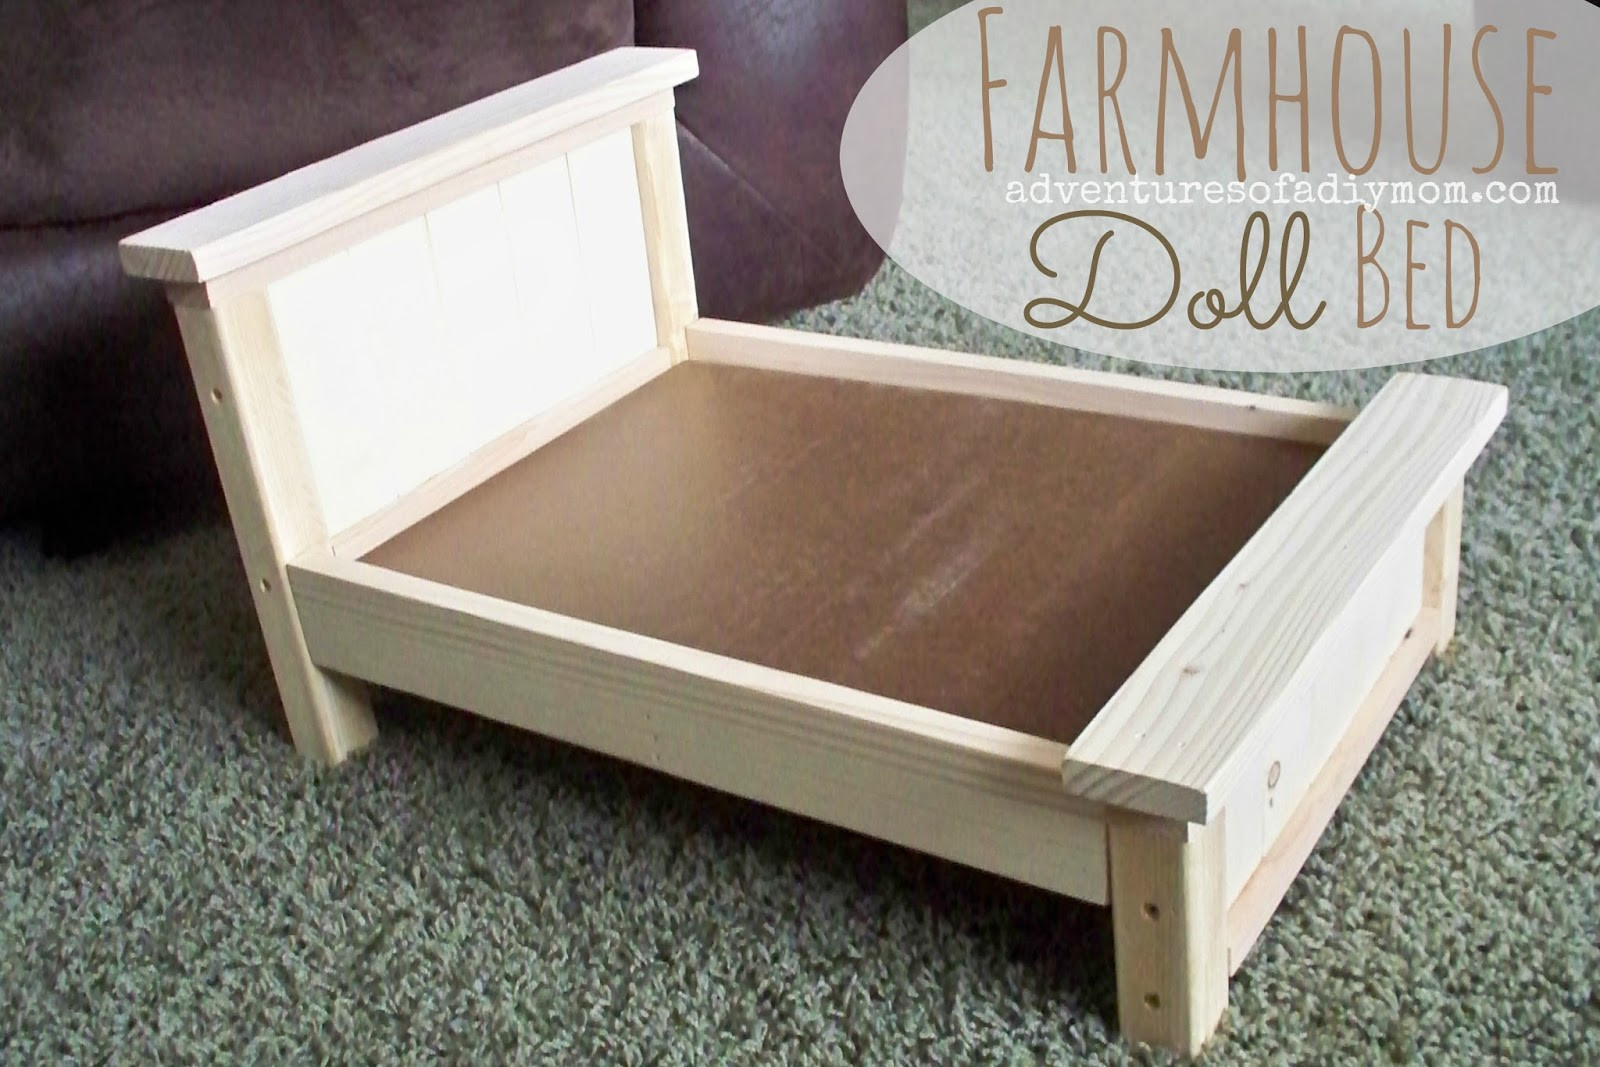 Best ideas about DIY Dolls Furniture . Save or Pin DIY Farmhouse Doll Bed for American Girl Dolls Now.